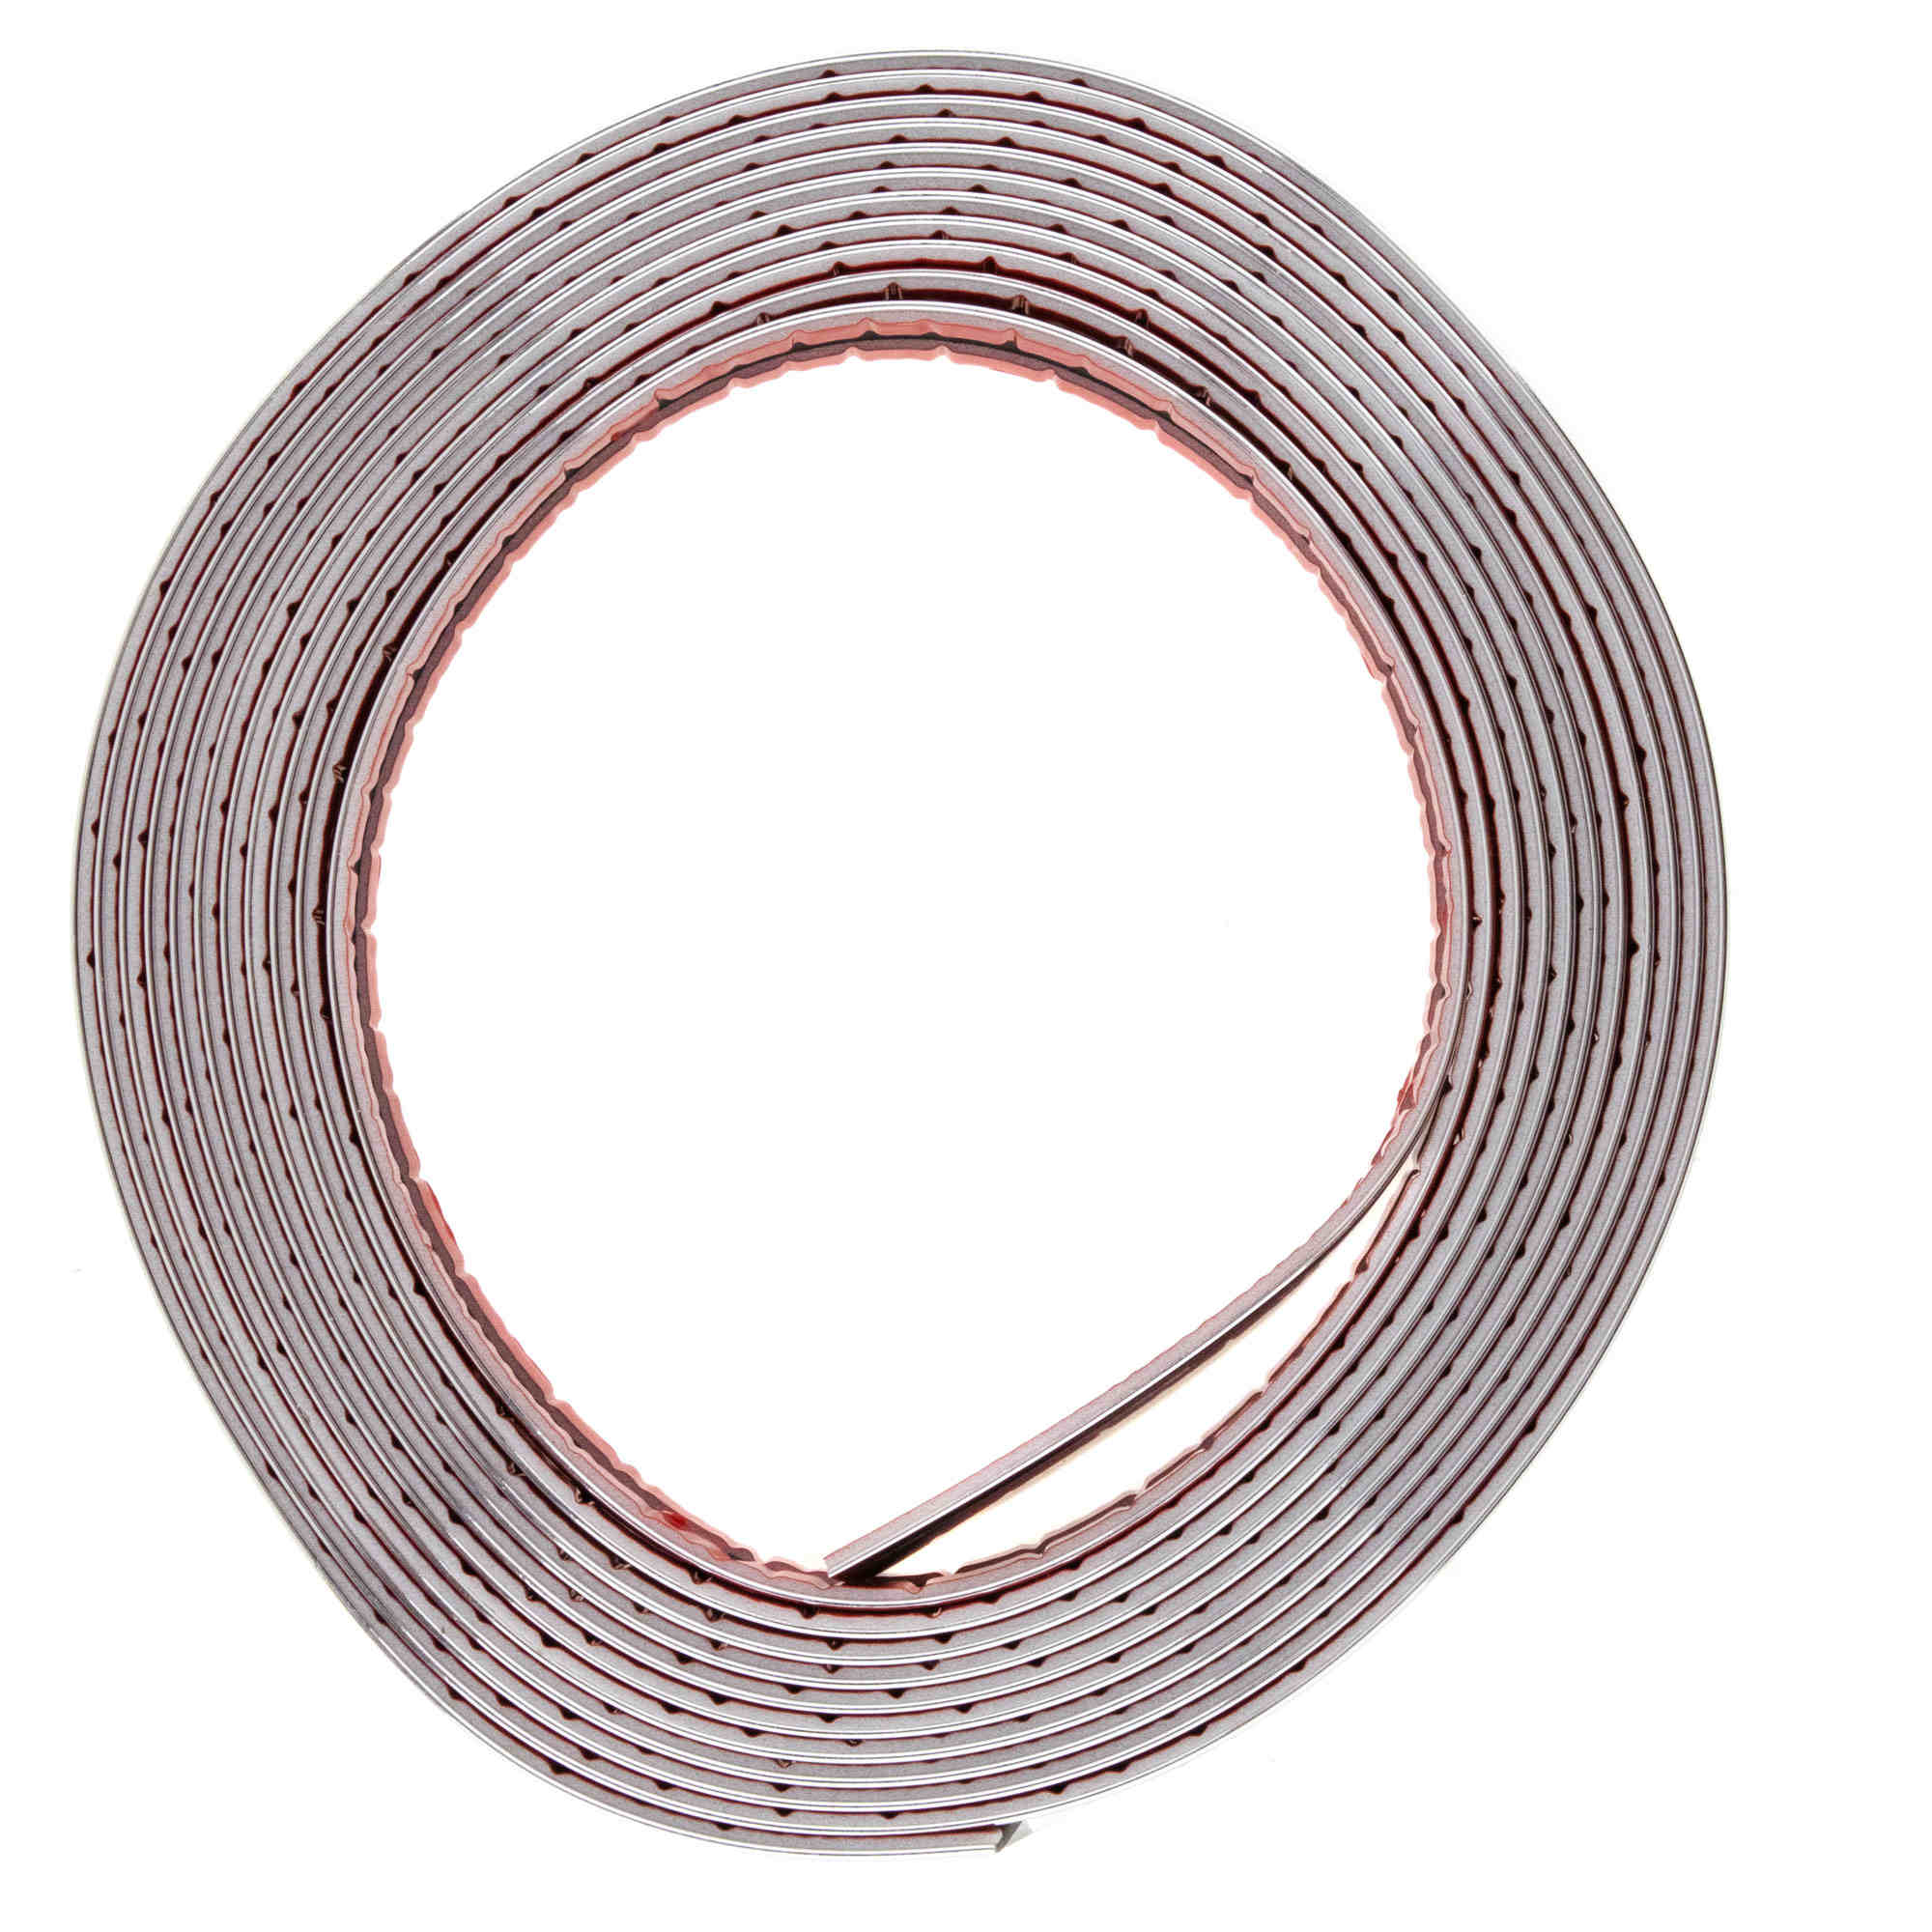 Chrome trim 18mm - 5 meter